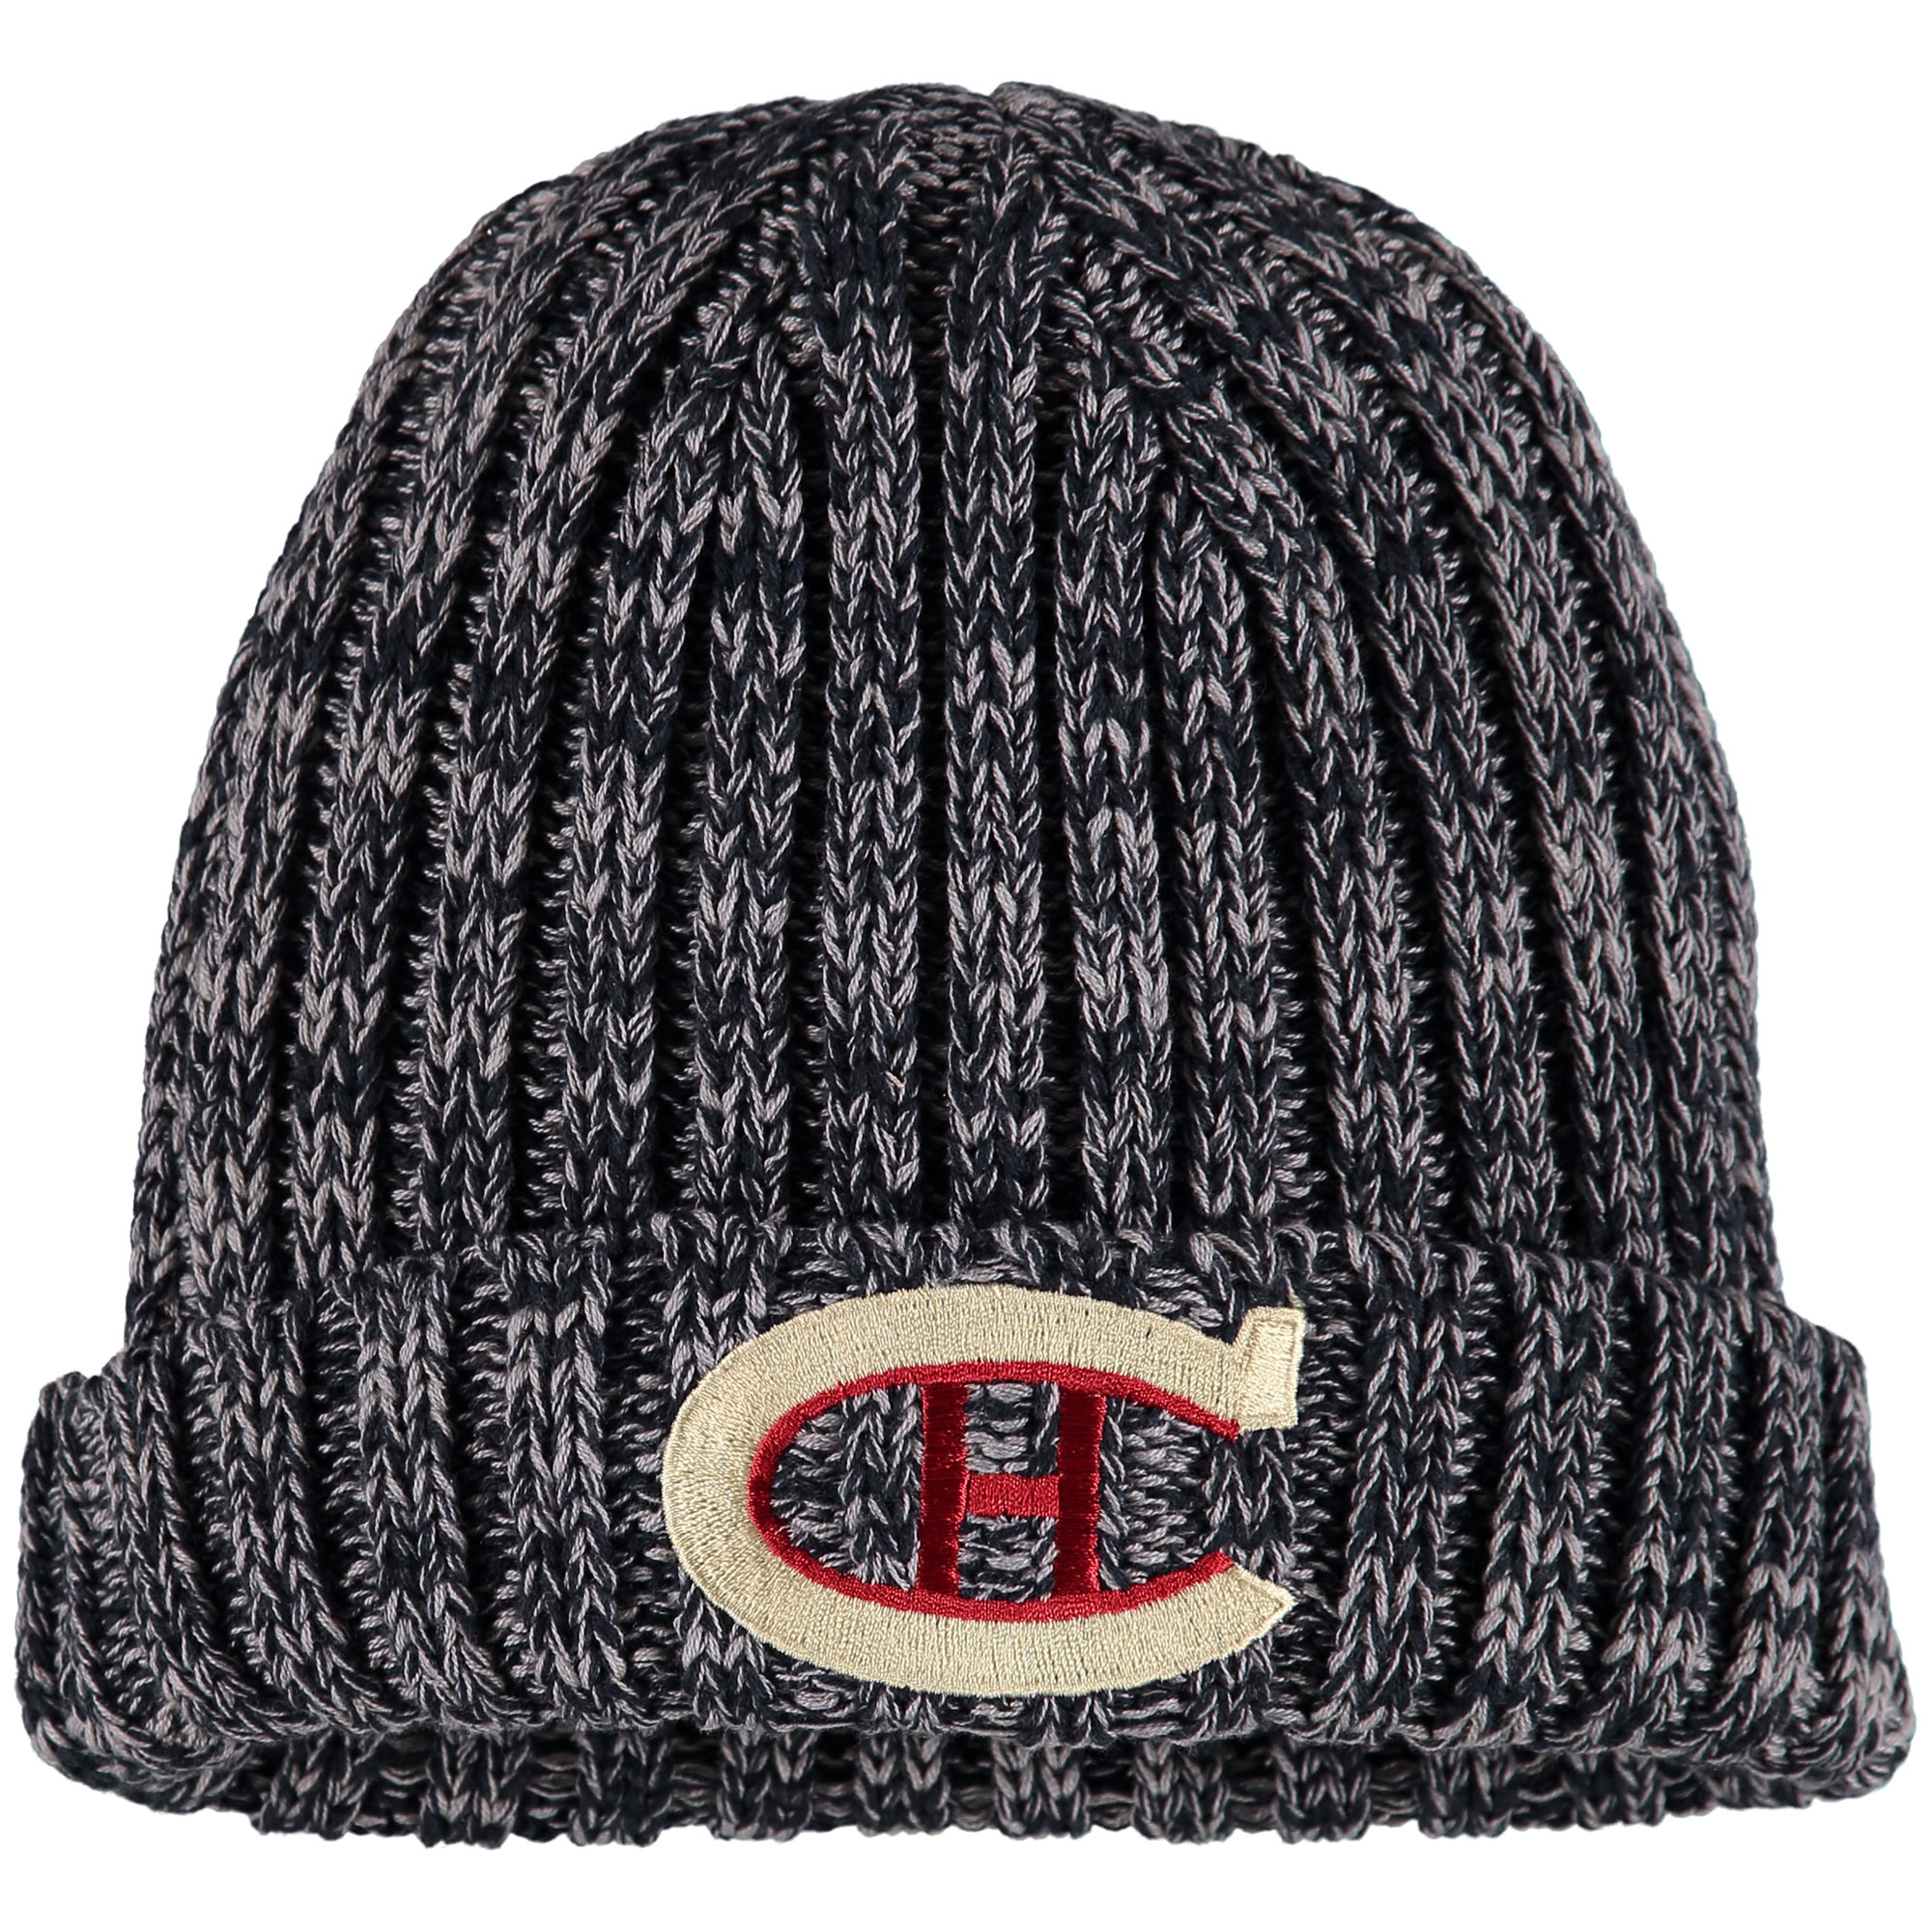 Montreal Canadiens CCM 2016 Winter Classic Watch Cap Cuffed Knit Hat - Red - OSFA